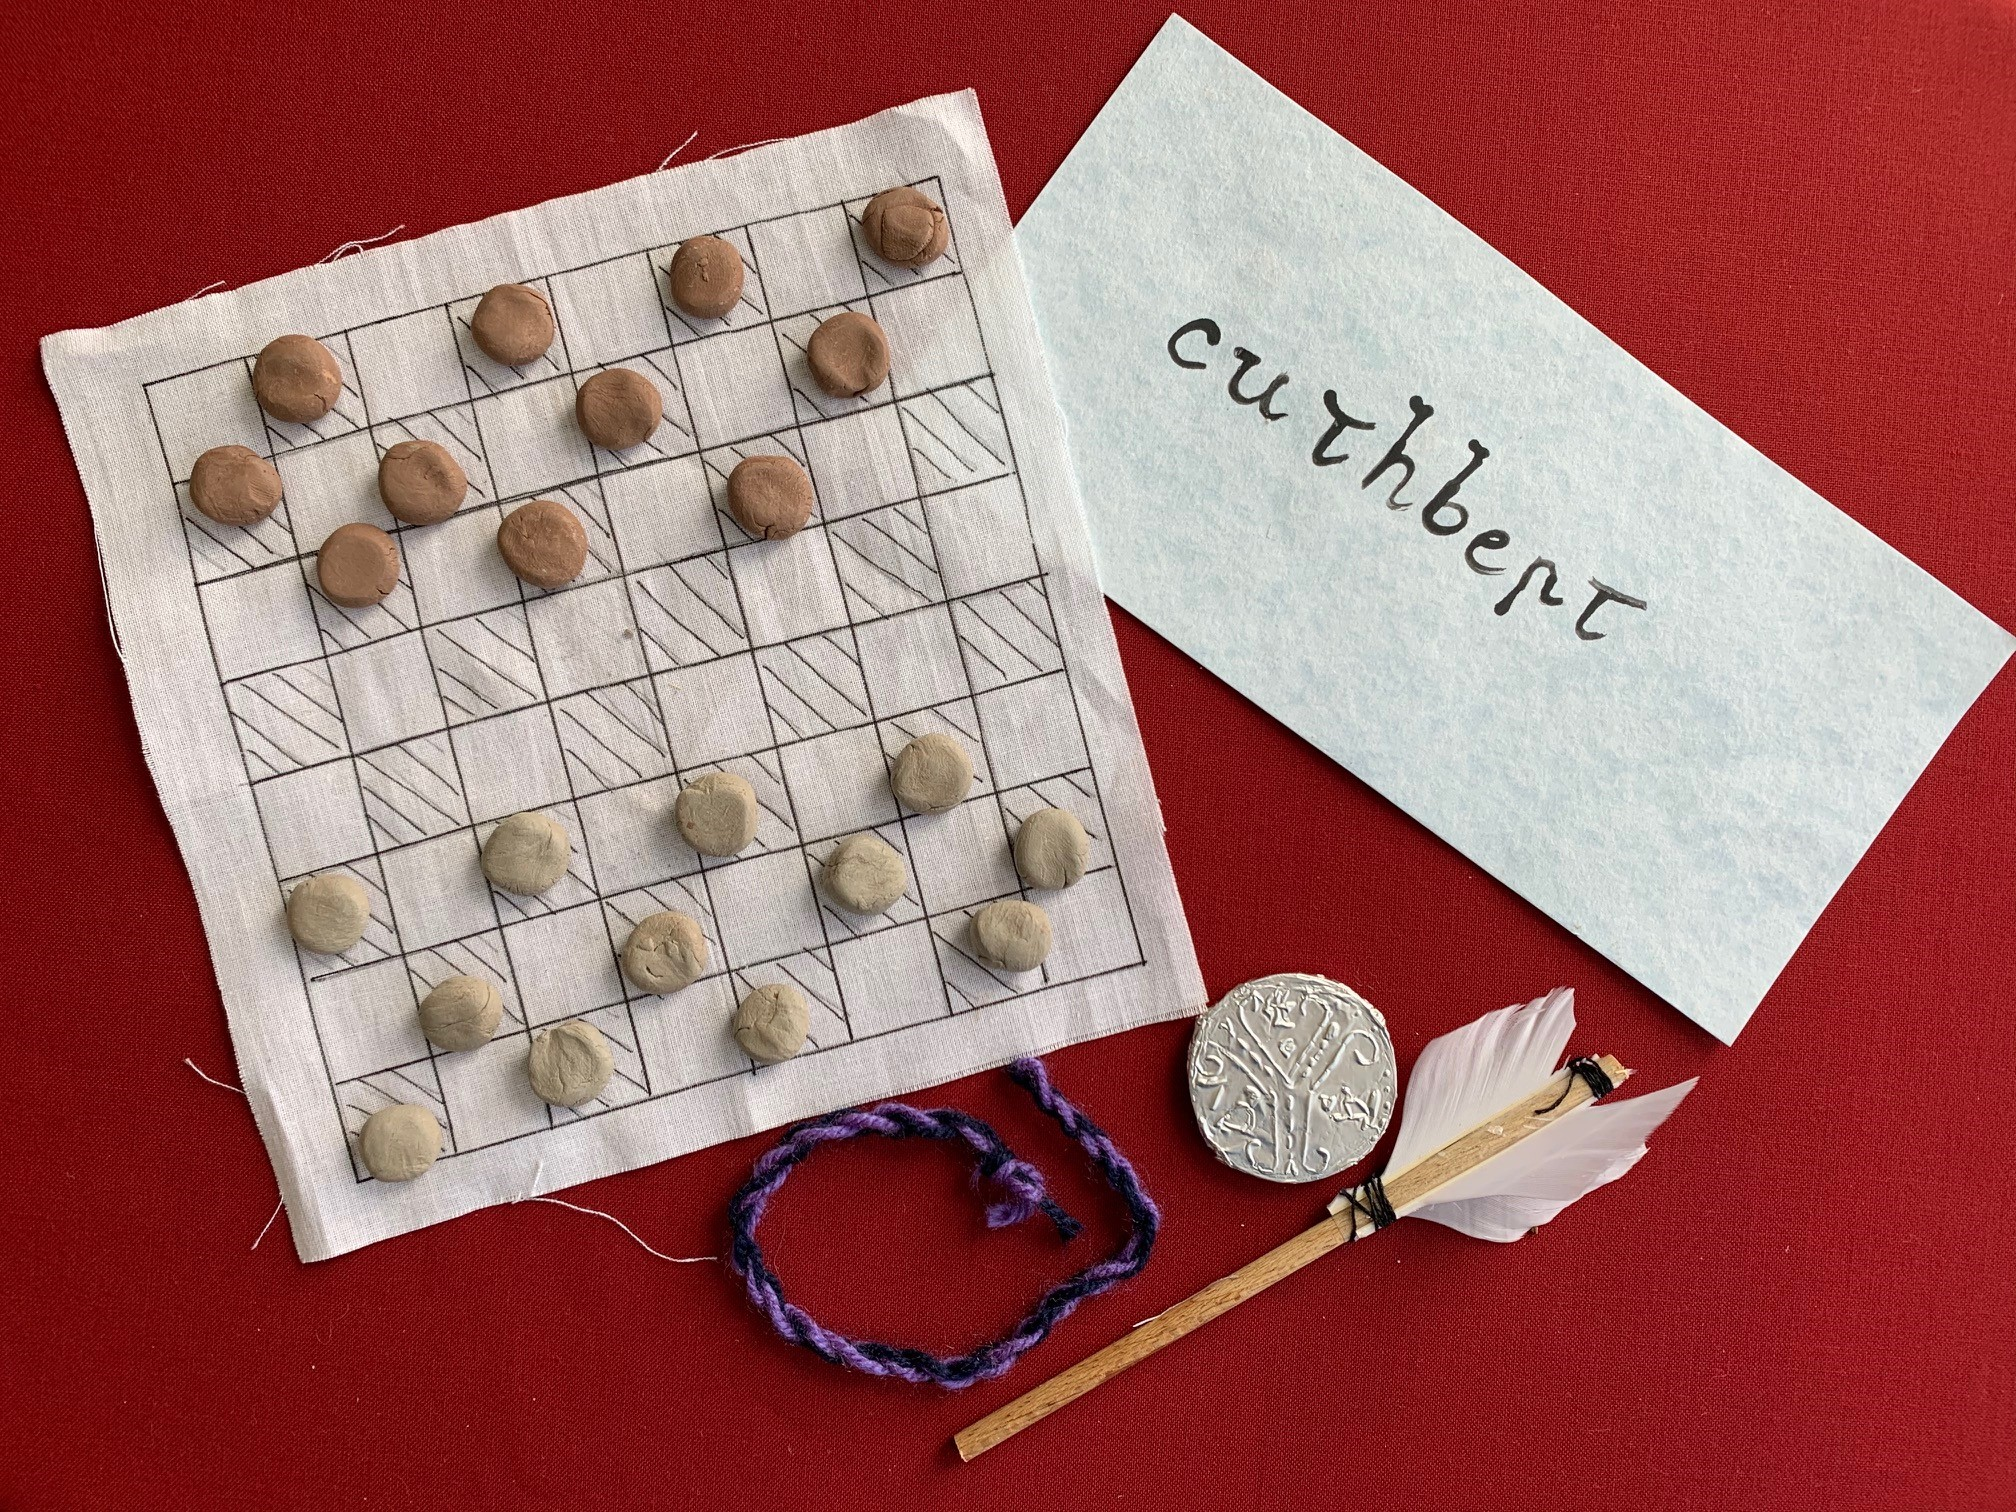 The items displayed include a draughts board, a handwriting sample, a fletched arrow, a silver coin and a woolen braid.